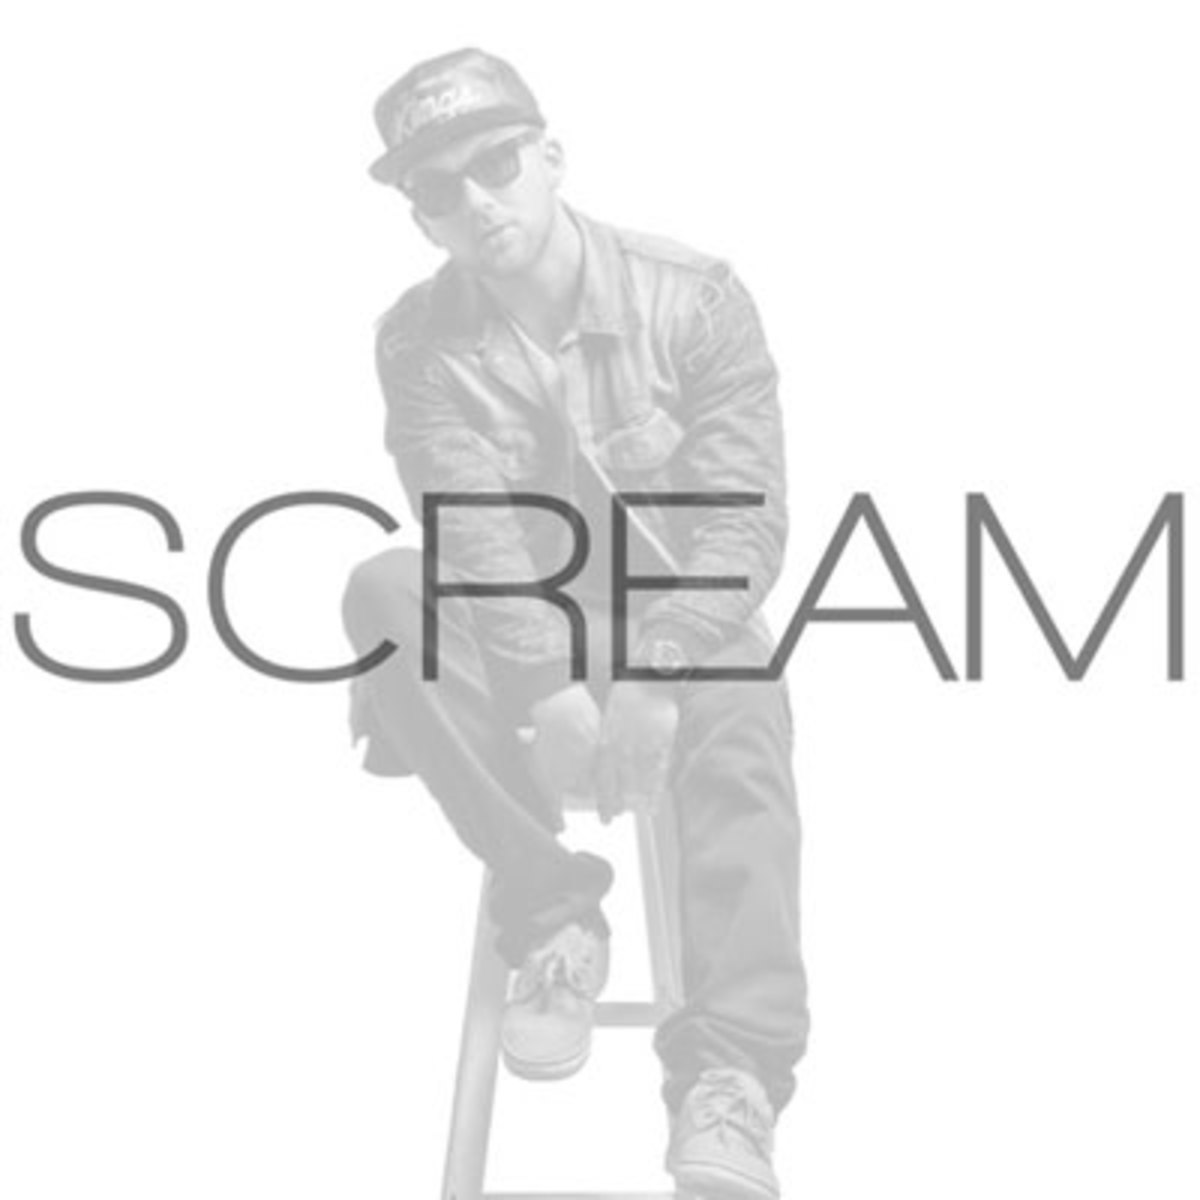 sonreal-scream.jpg